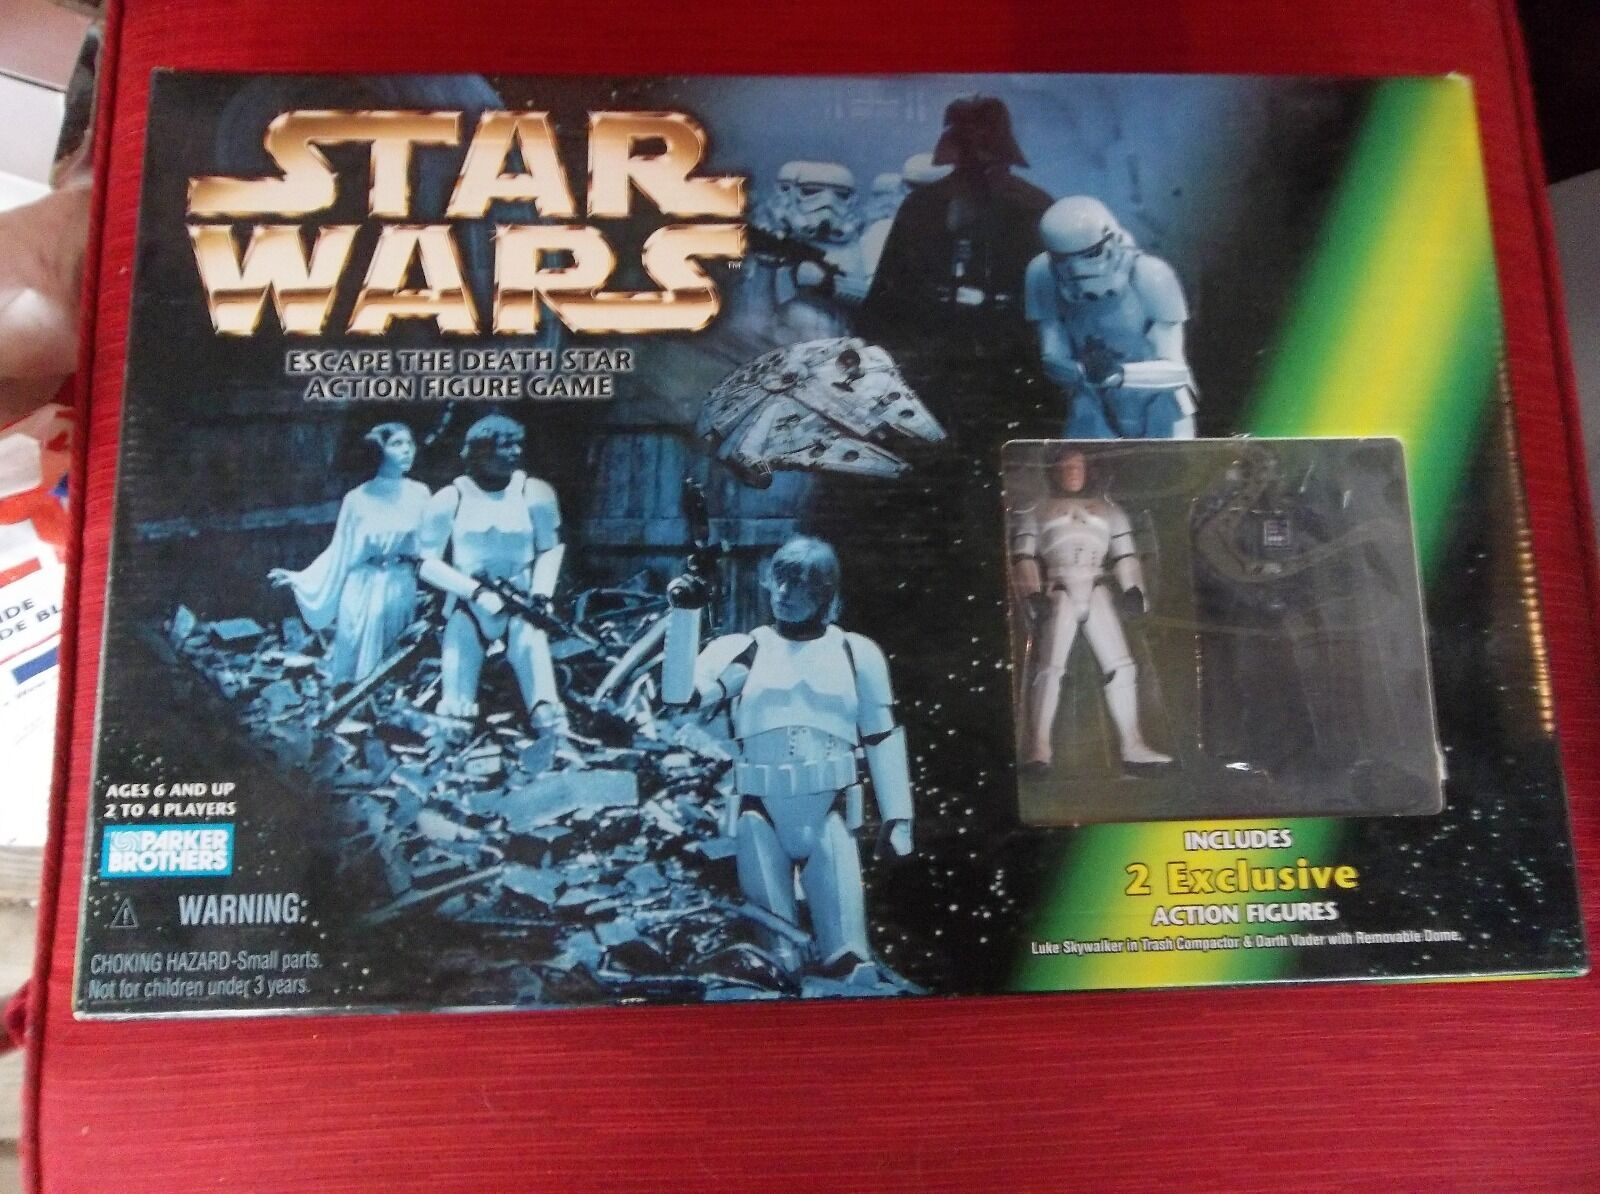 1998 Parker Bros. Star Wars Escape the Death Star Action Figure Game NICE